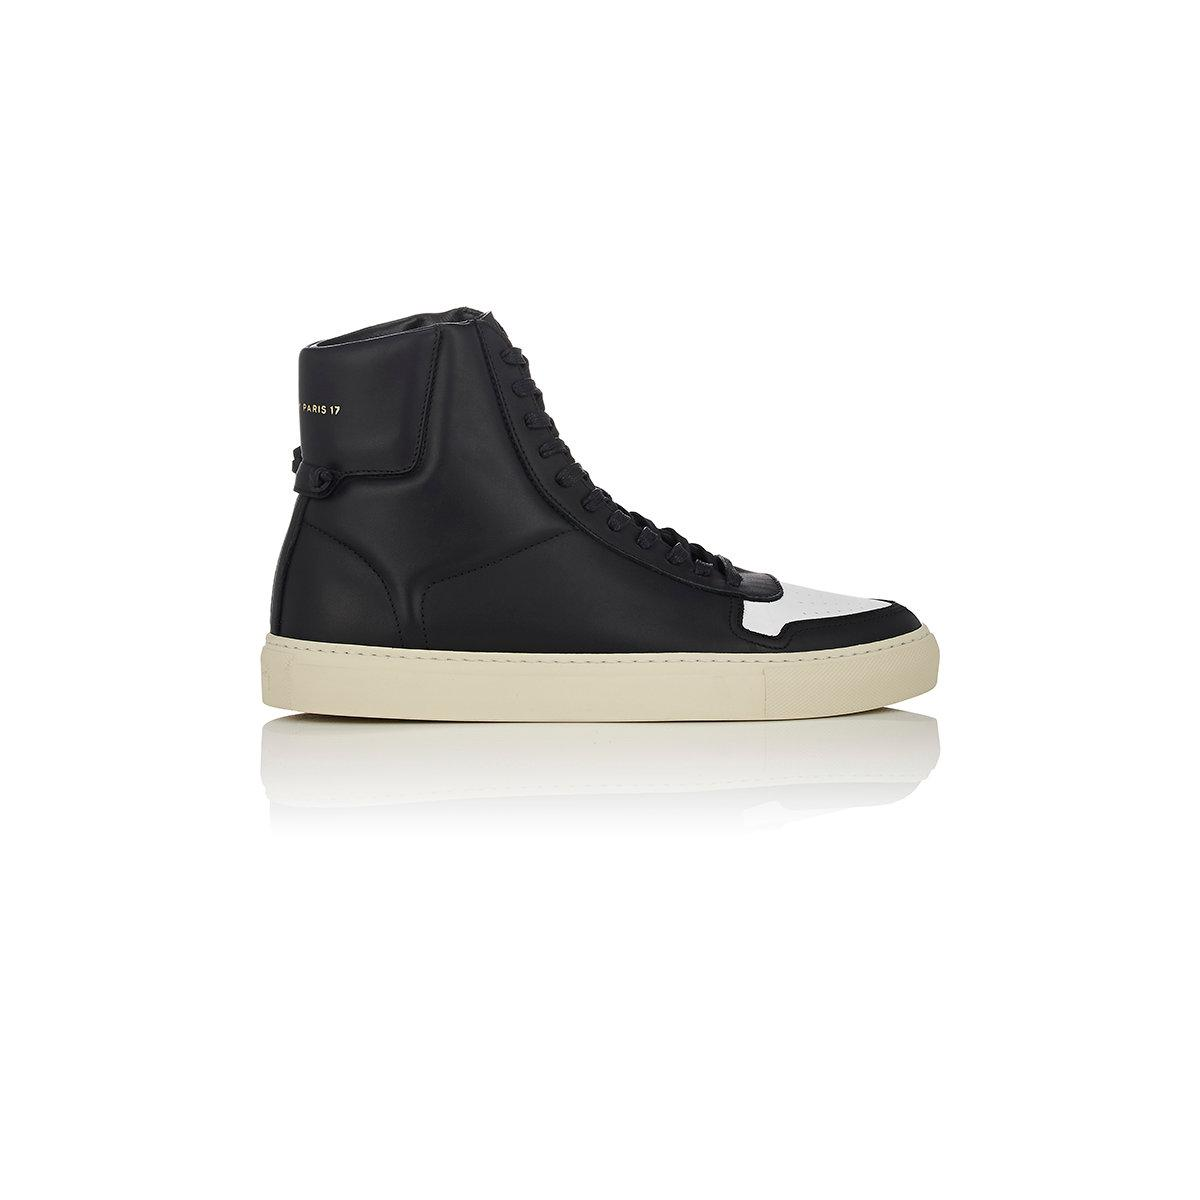 7bd22c4c7b8 Givenchy Paris Sneakers In Leather Price